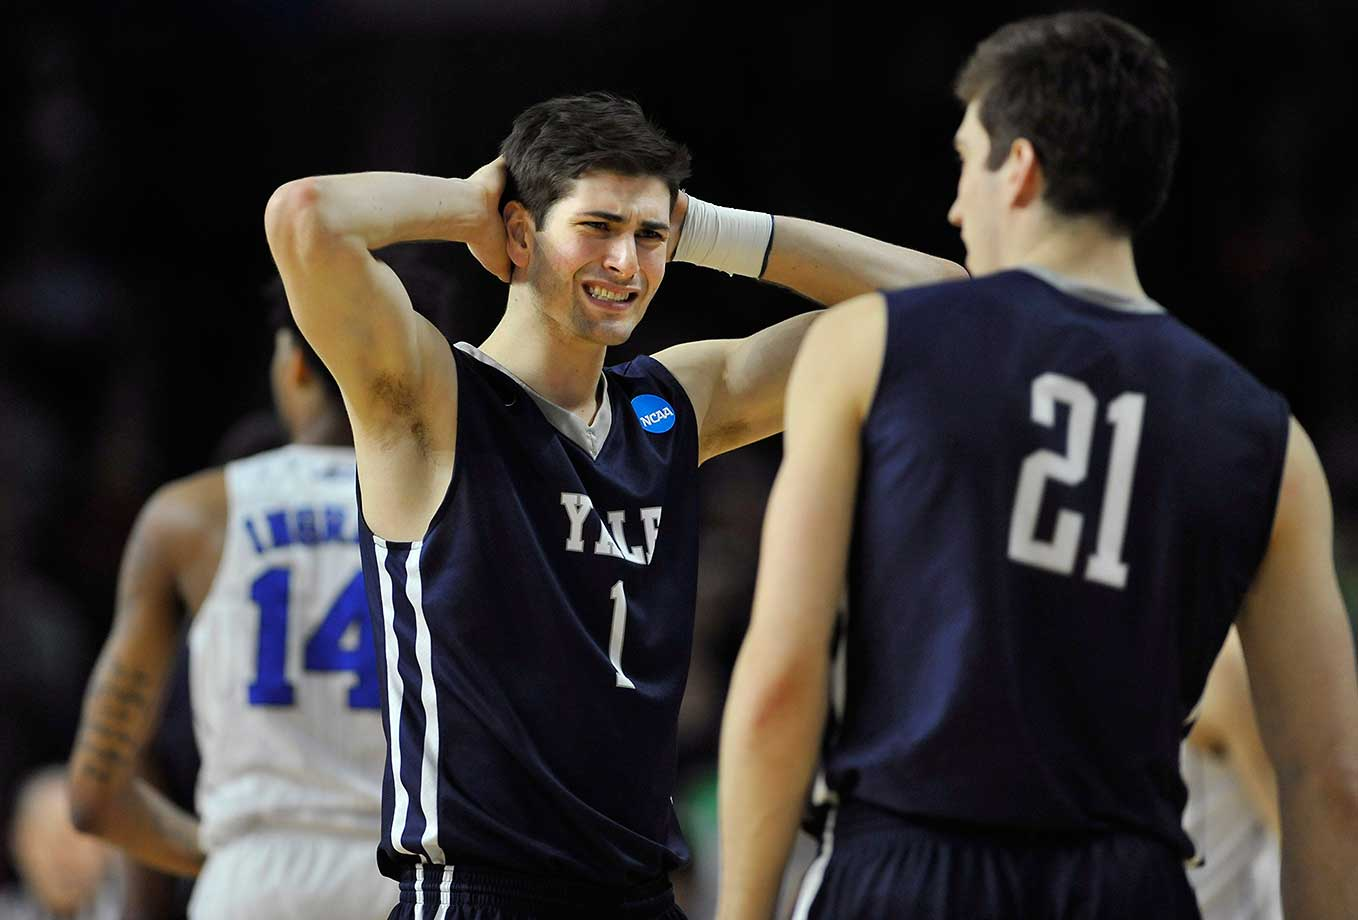 Here are some of the images that caught our eye as half of the Sweet 16 was decided in the NCAA Tournament, starting with Yale coming short of an epic comeback in a loss to Duke.